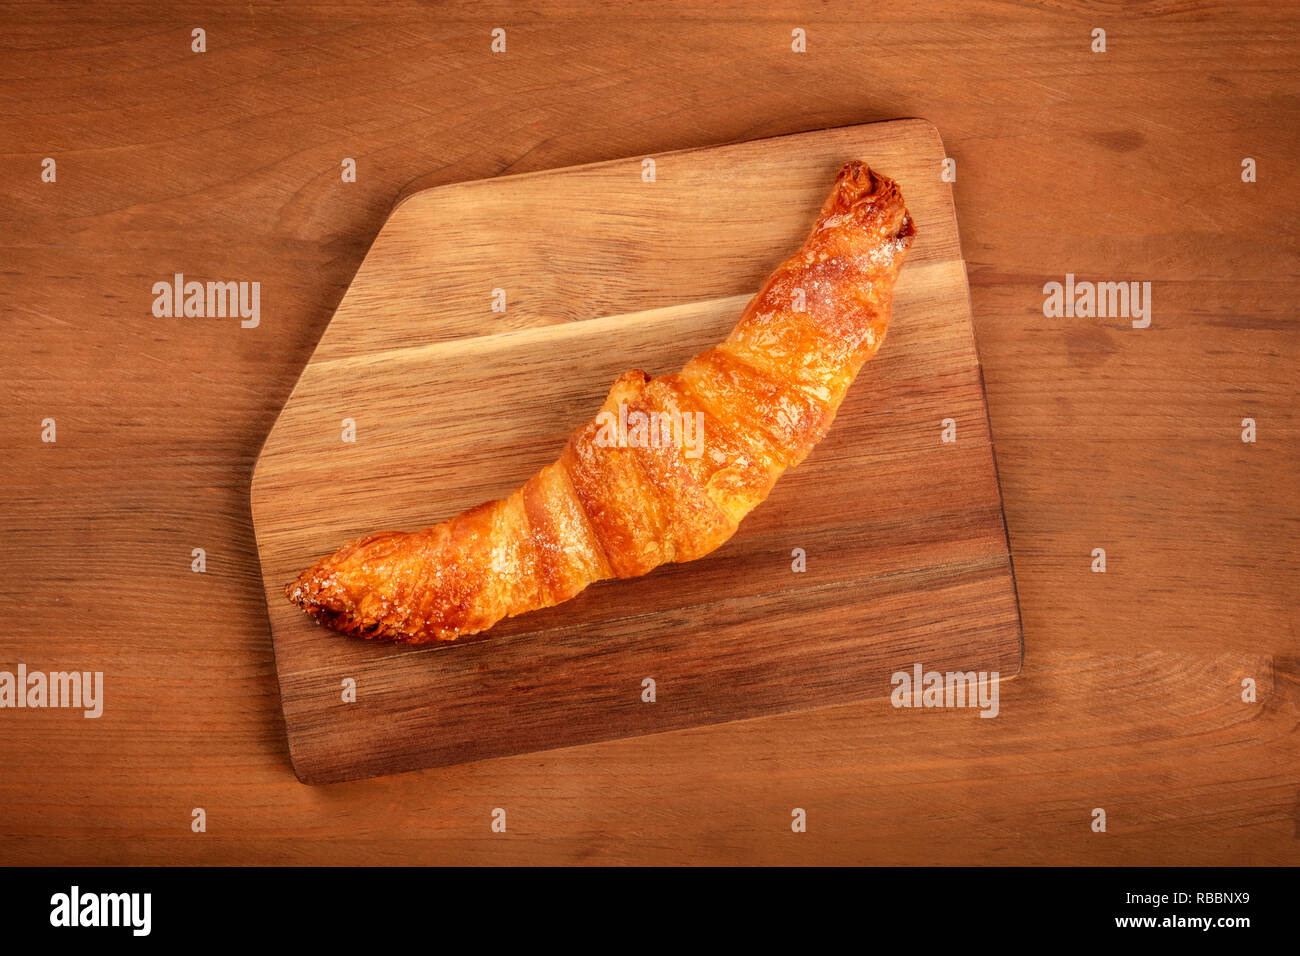 A photo of a croissant on a dark rustic wooden background, shot from the top with copy space - Stock Image